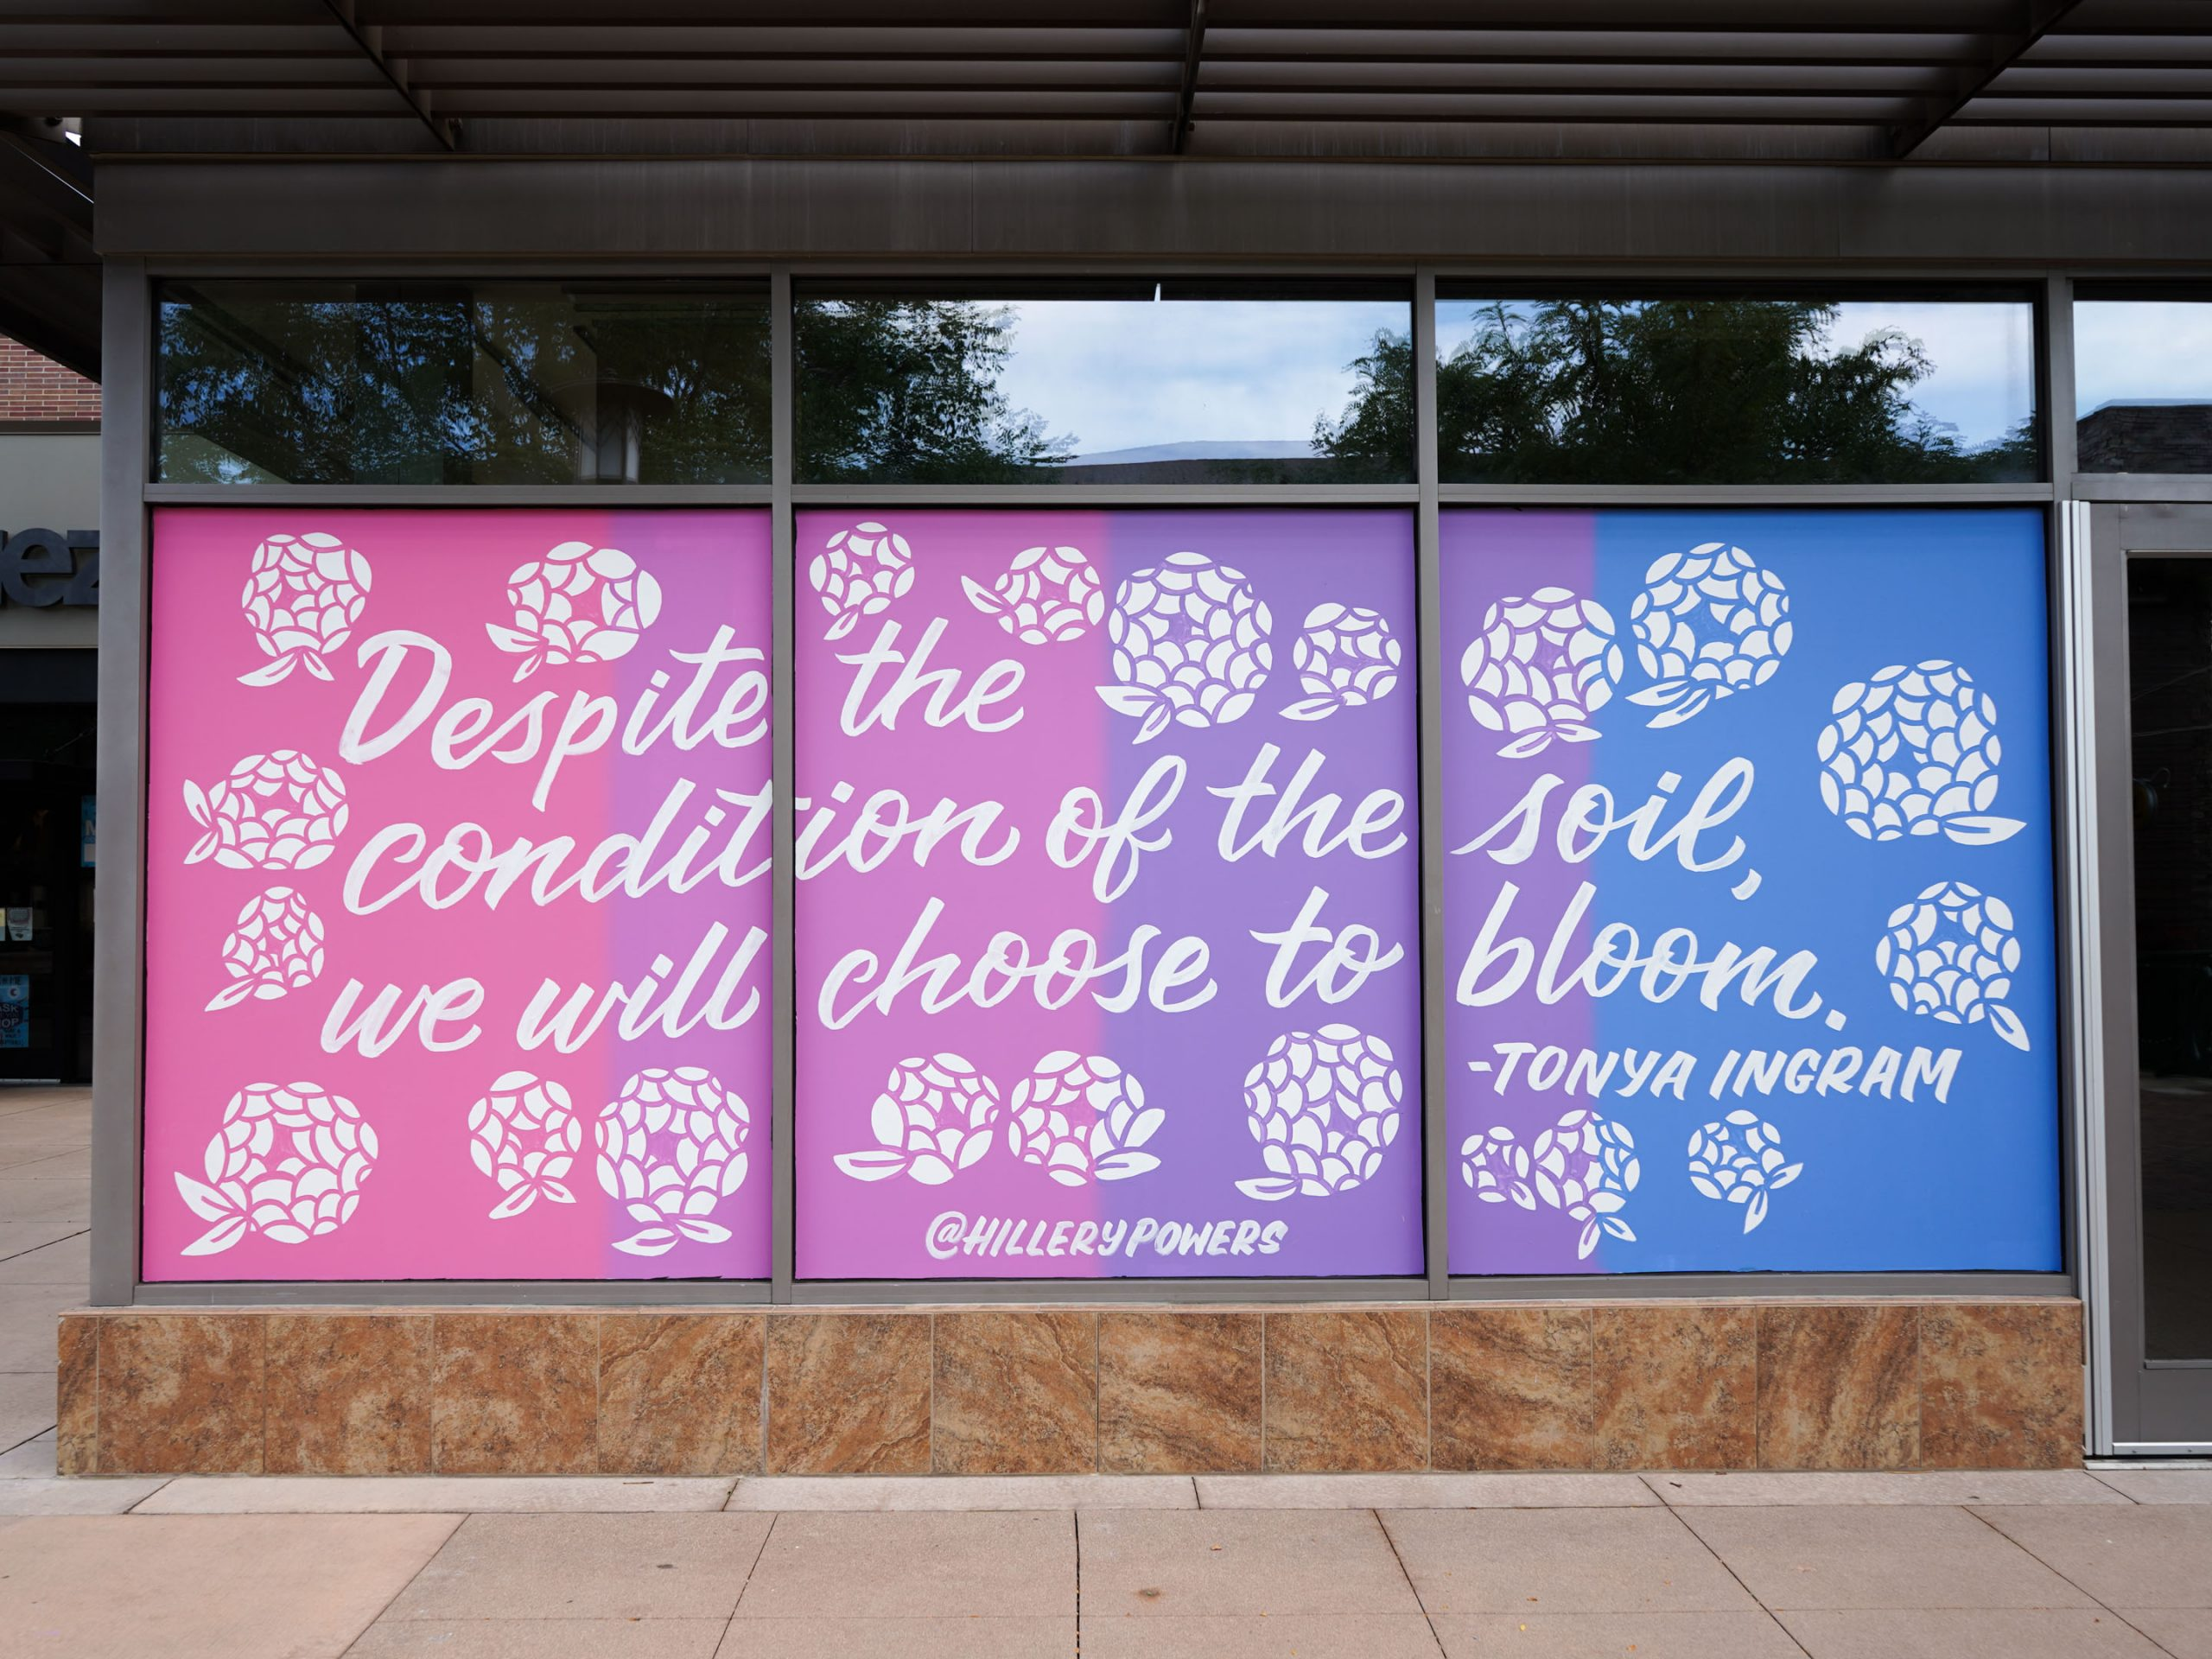 Choose to Bloom window mural